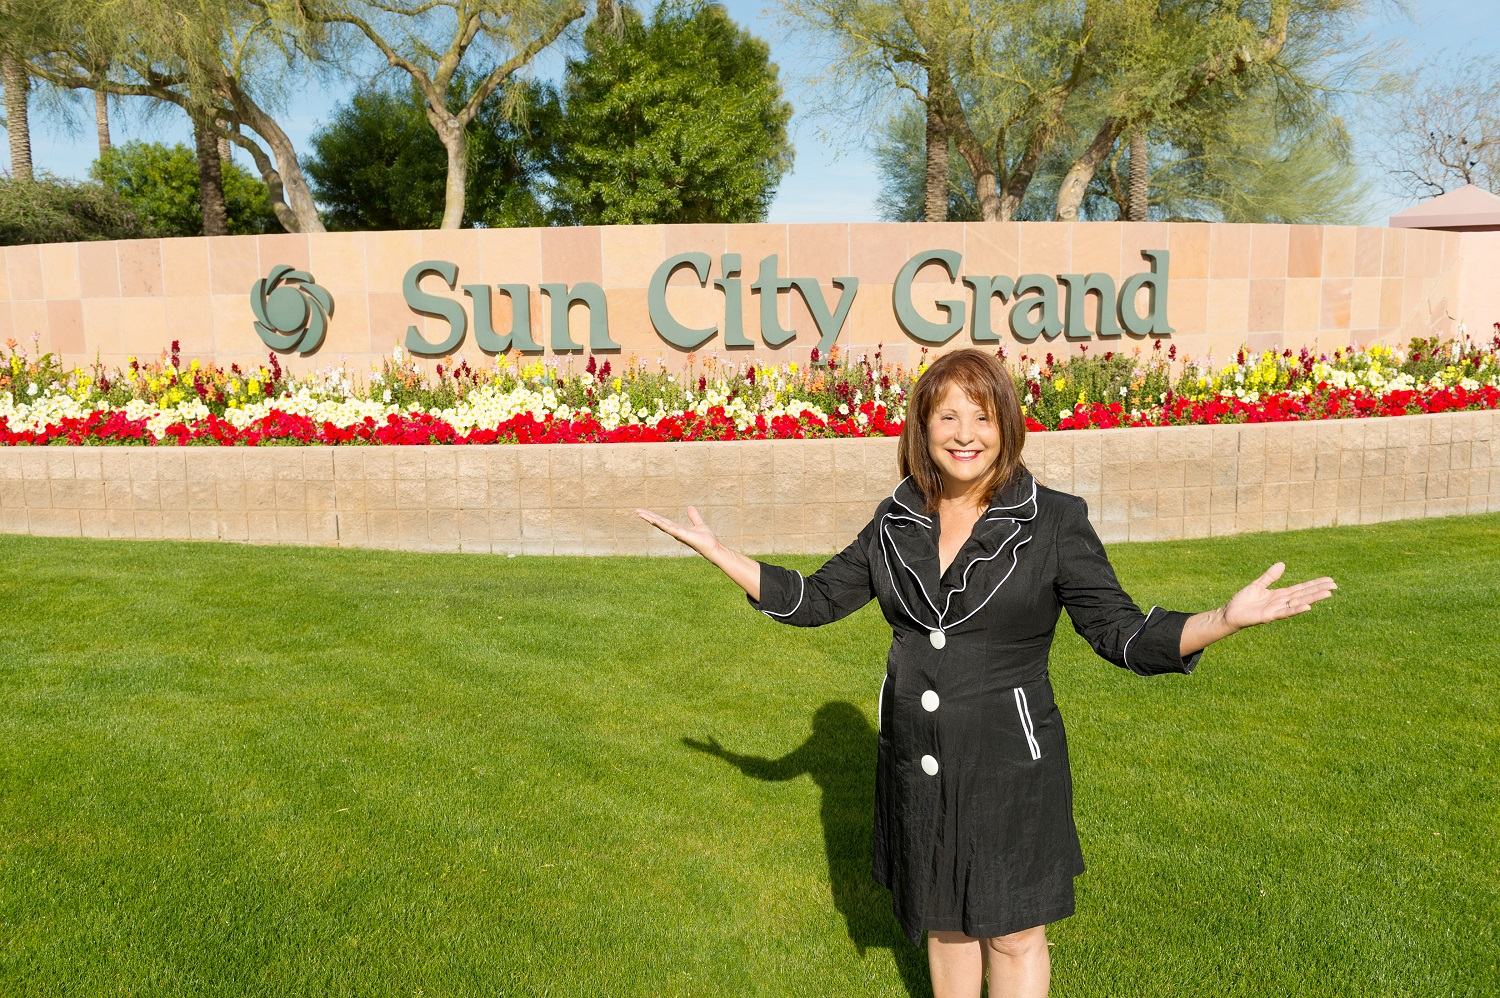 Sun City Grand Realtor Surprise Arizona